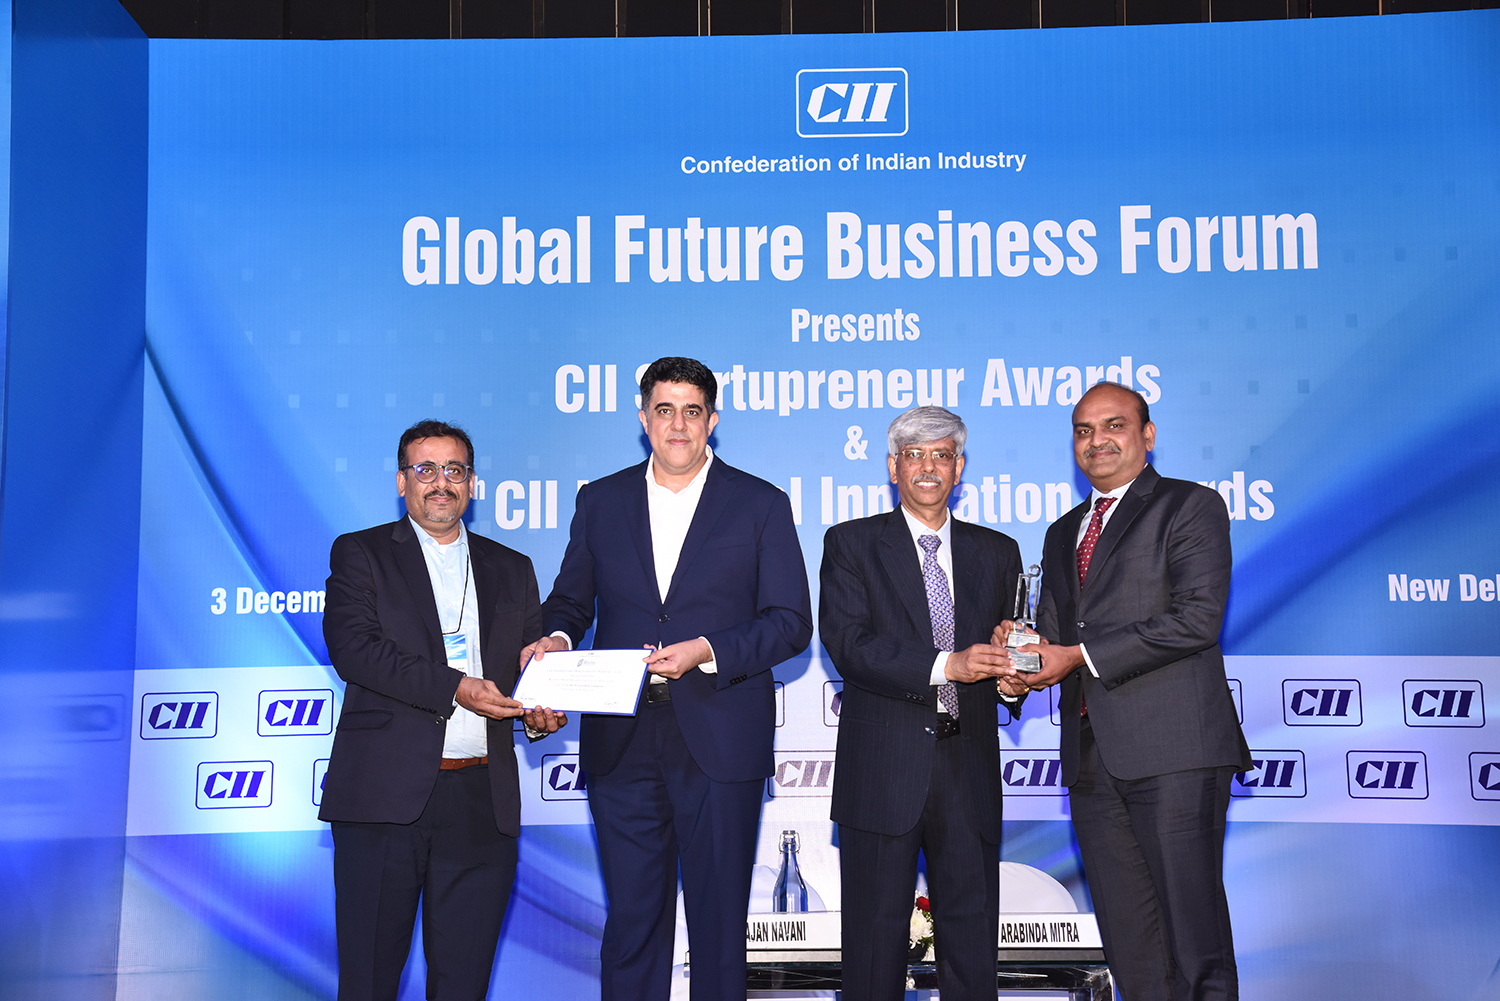 CII recognizes Access Healthcare as one of the Top 25 Most Innovative Company of the Year